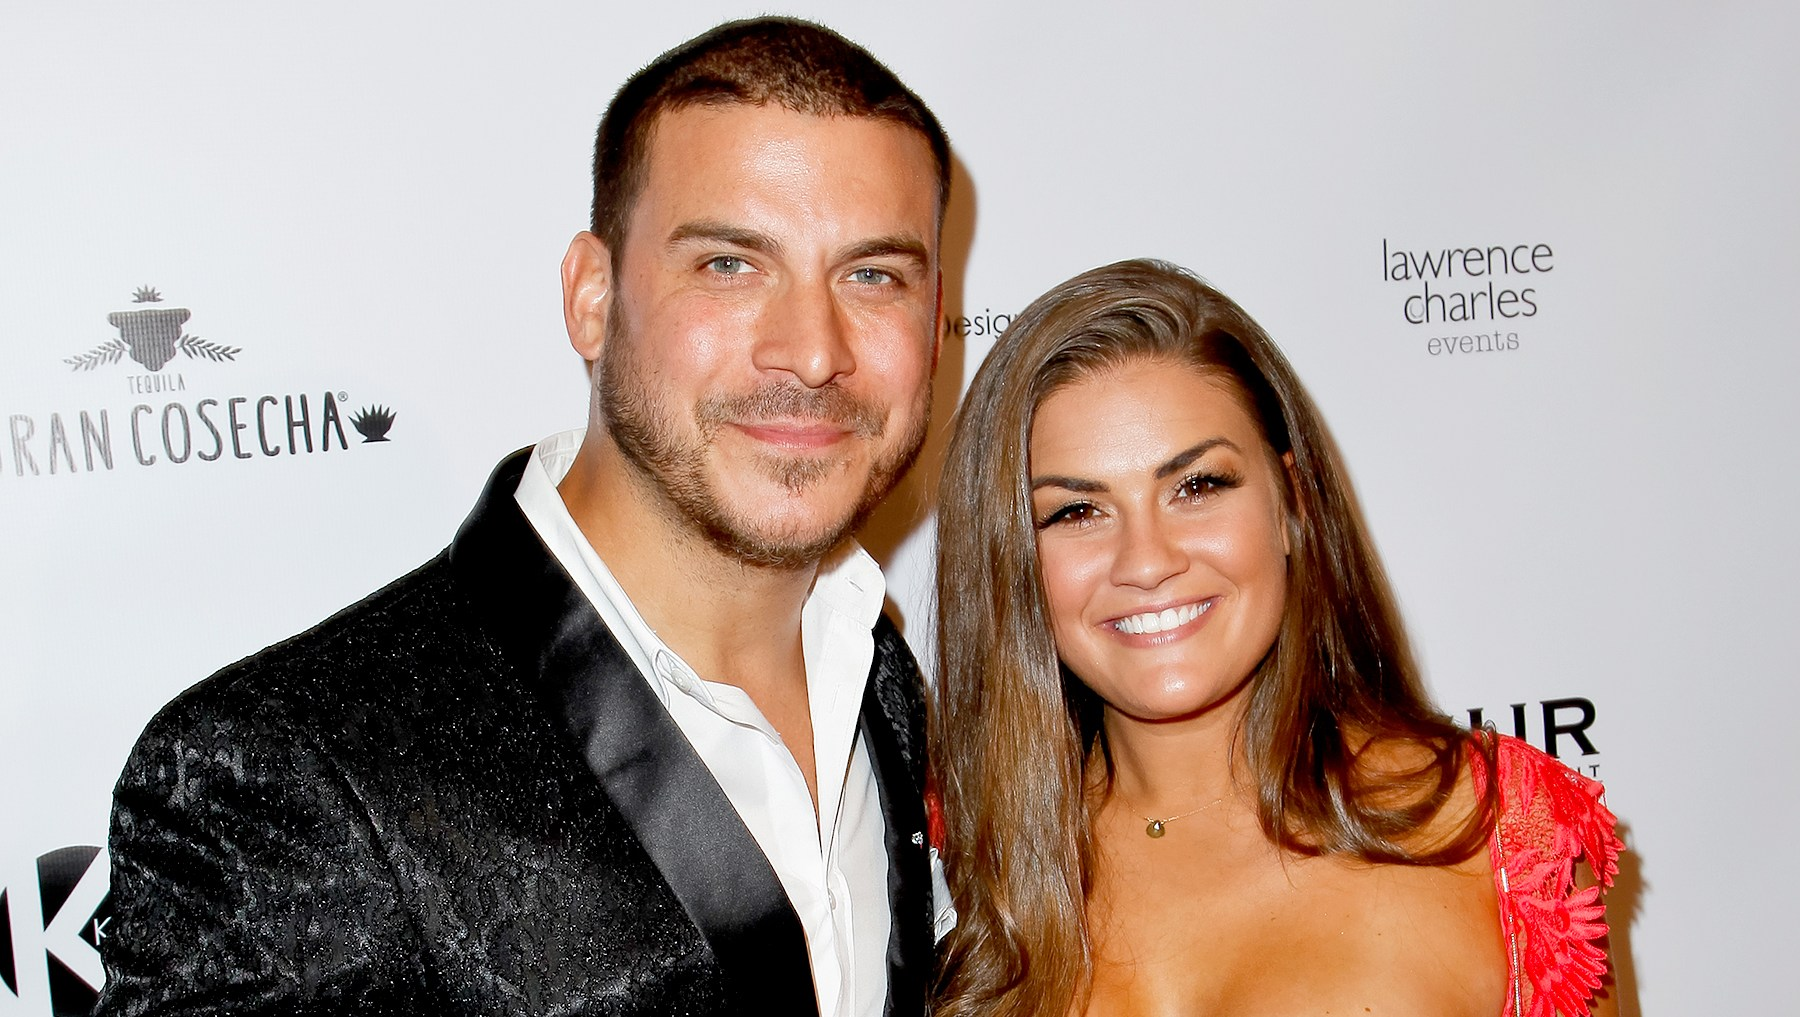 Jax-Taylor-and-Brittany-Cartwright